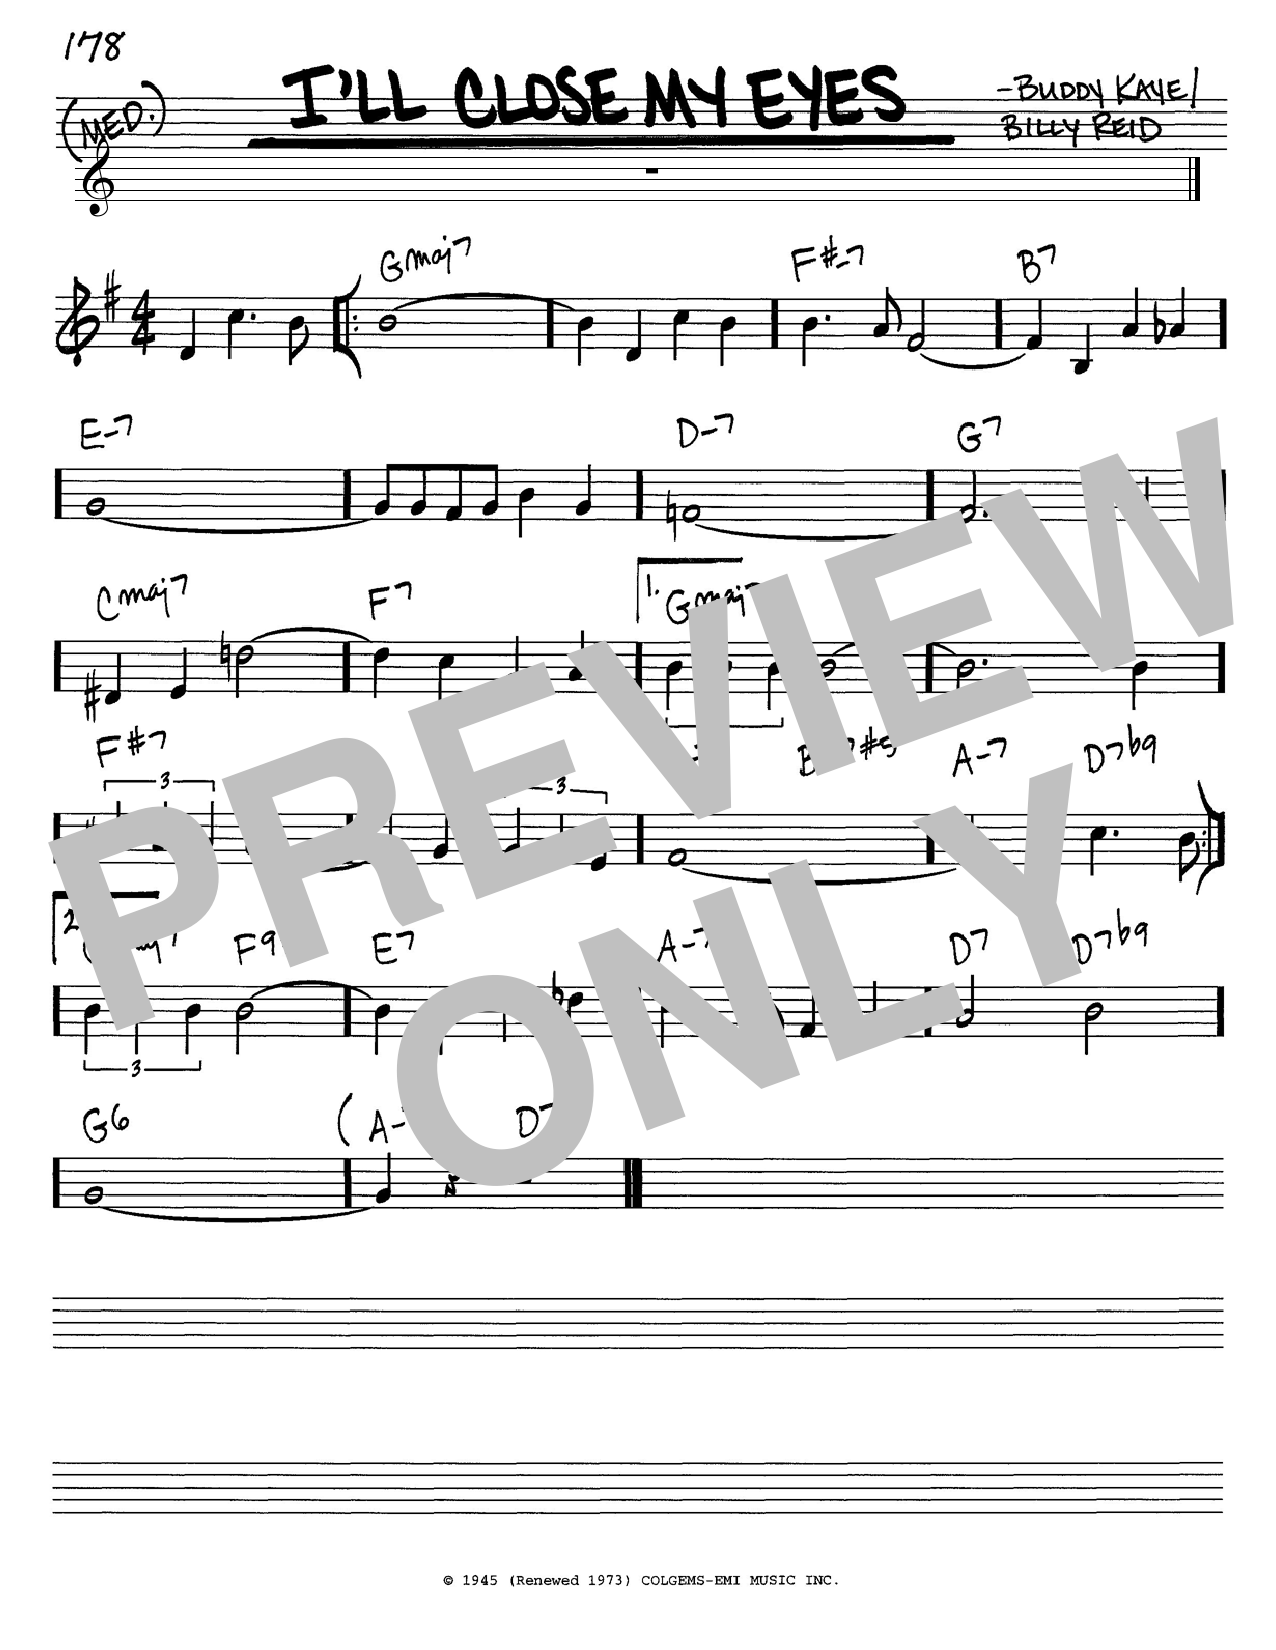 Buddy Kaye I'll Close My Eyes sheet music notes and chords